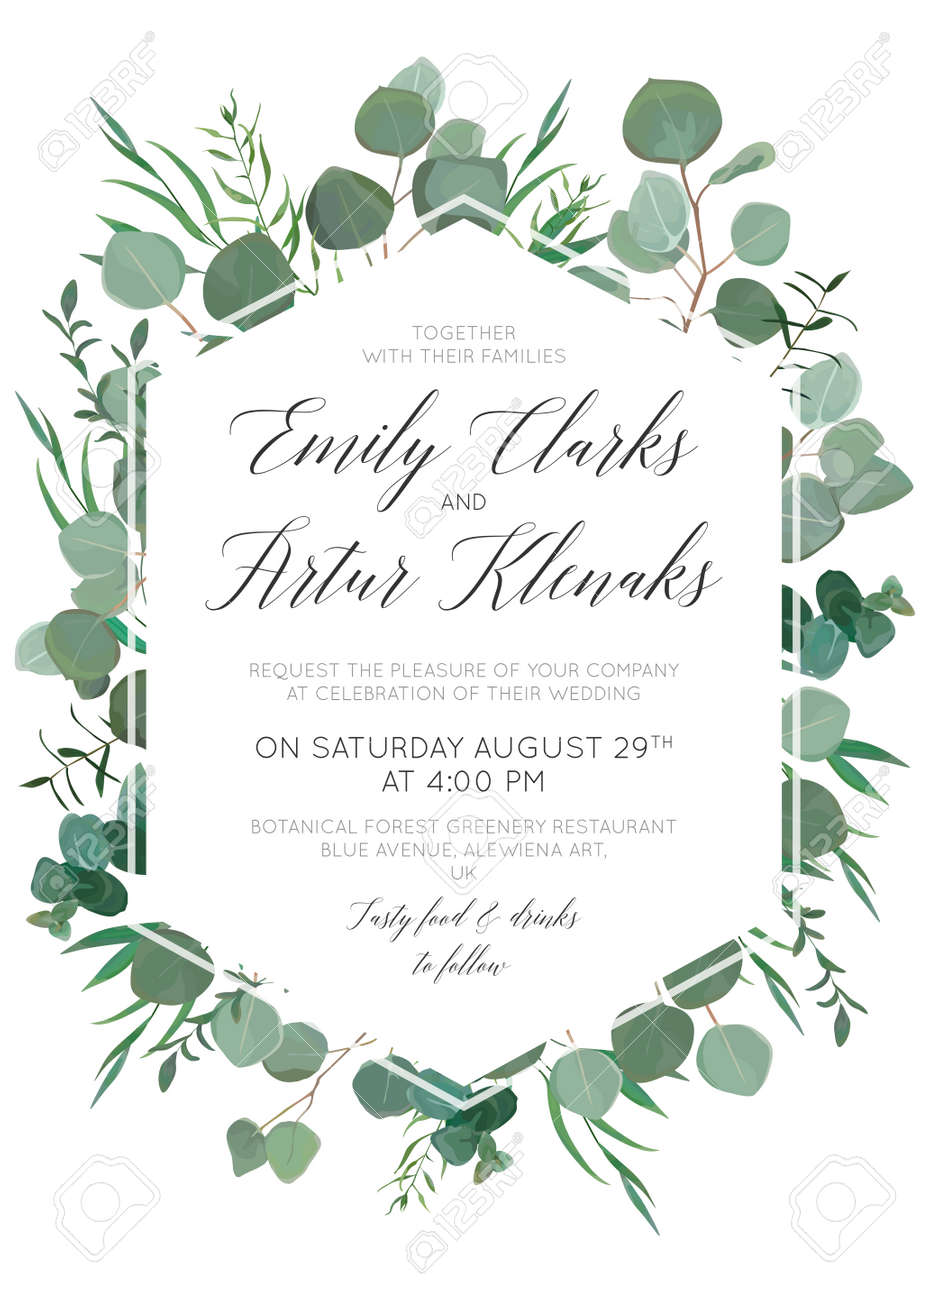 Wedding floral invite, invitation, save the date card design with elegant eucalyptus greenery branches, green forest leaves foliage, herbs & cute polygonal geometrical frame. Beautiful trendy template - 97716737